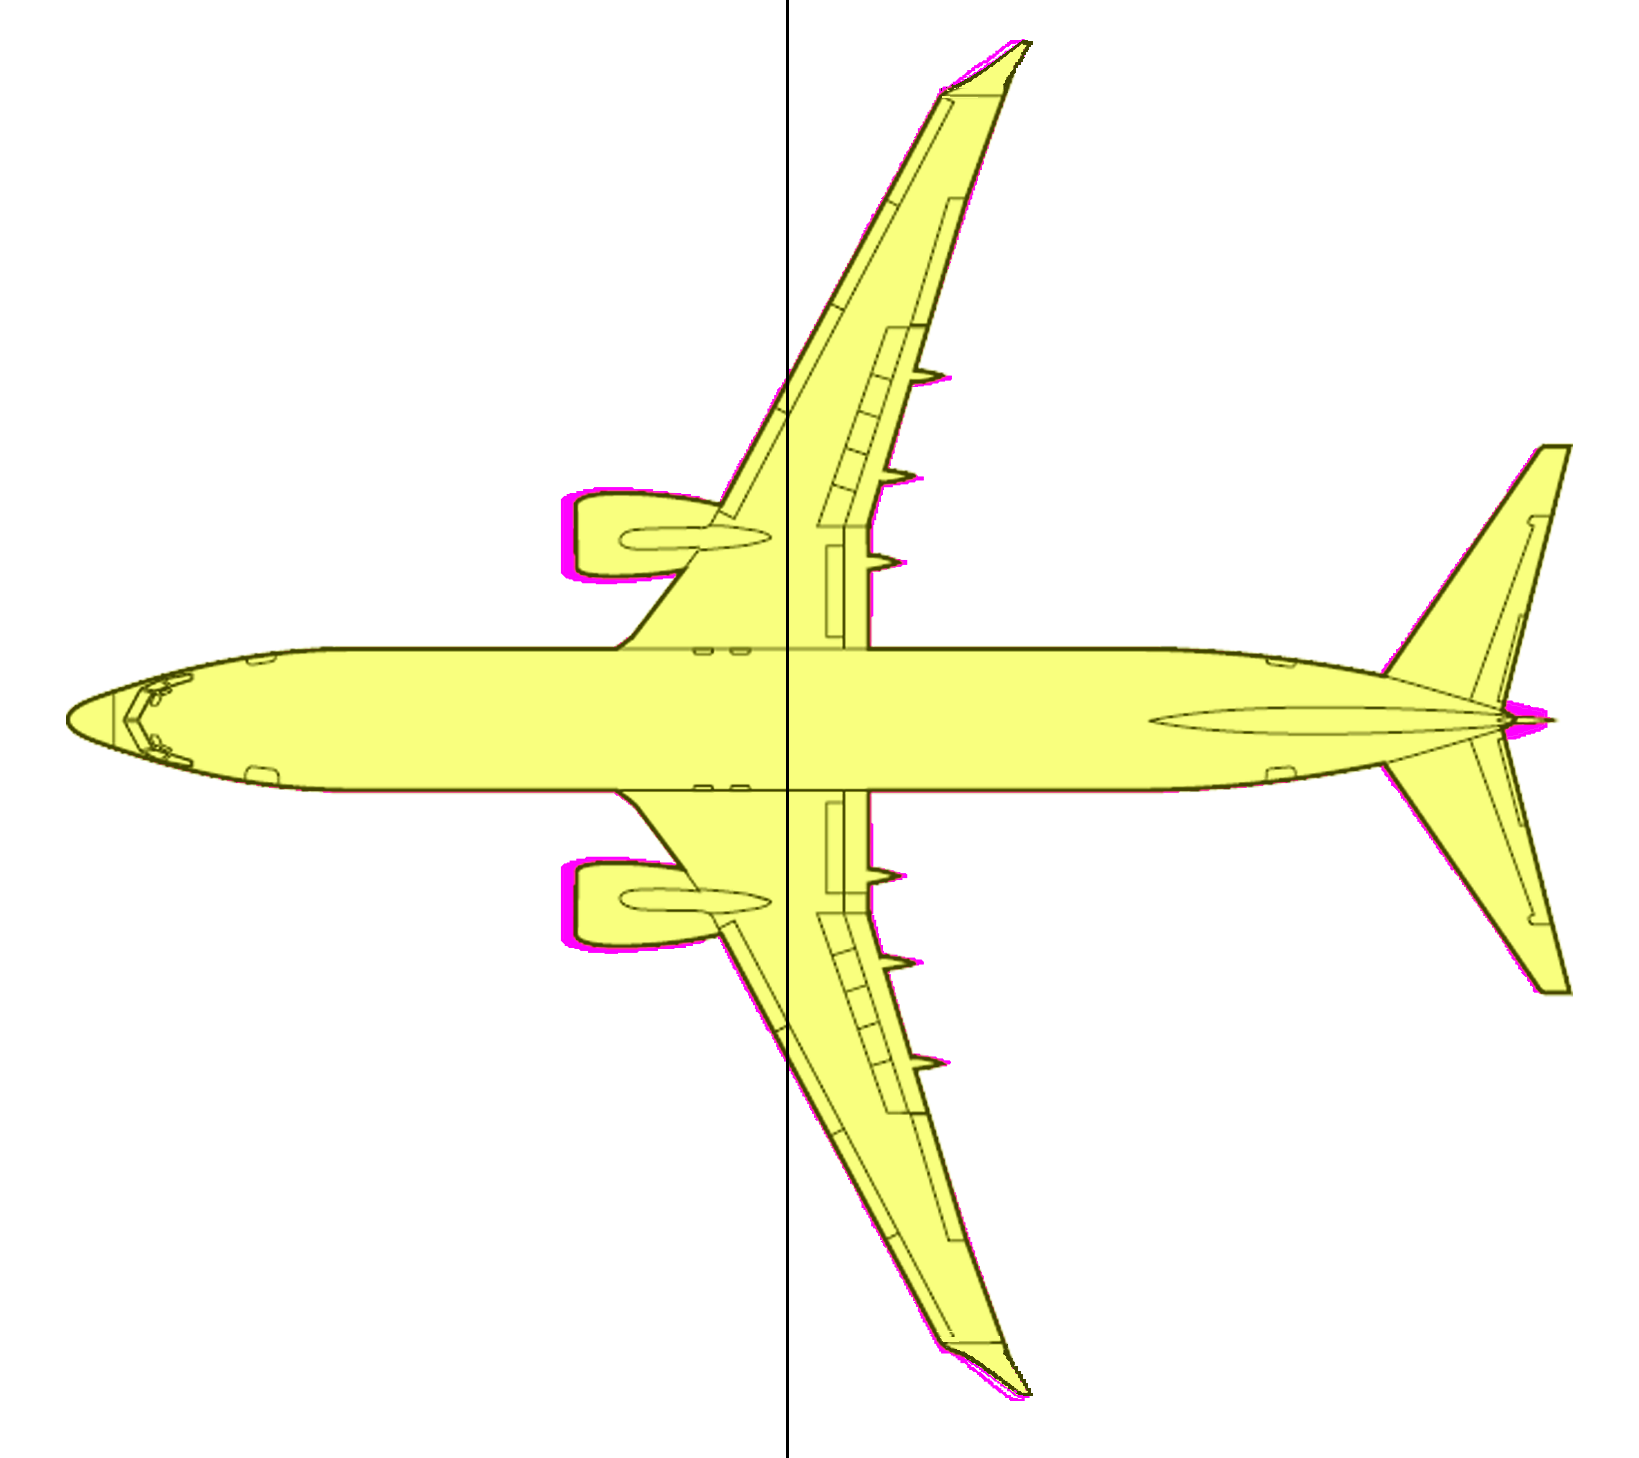 737NG-vs-MAX-planform.png